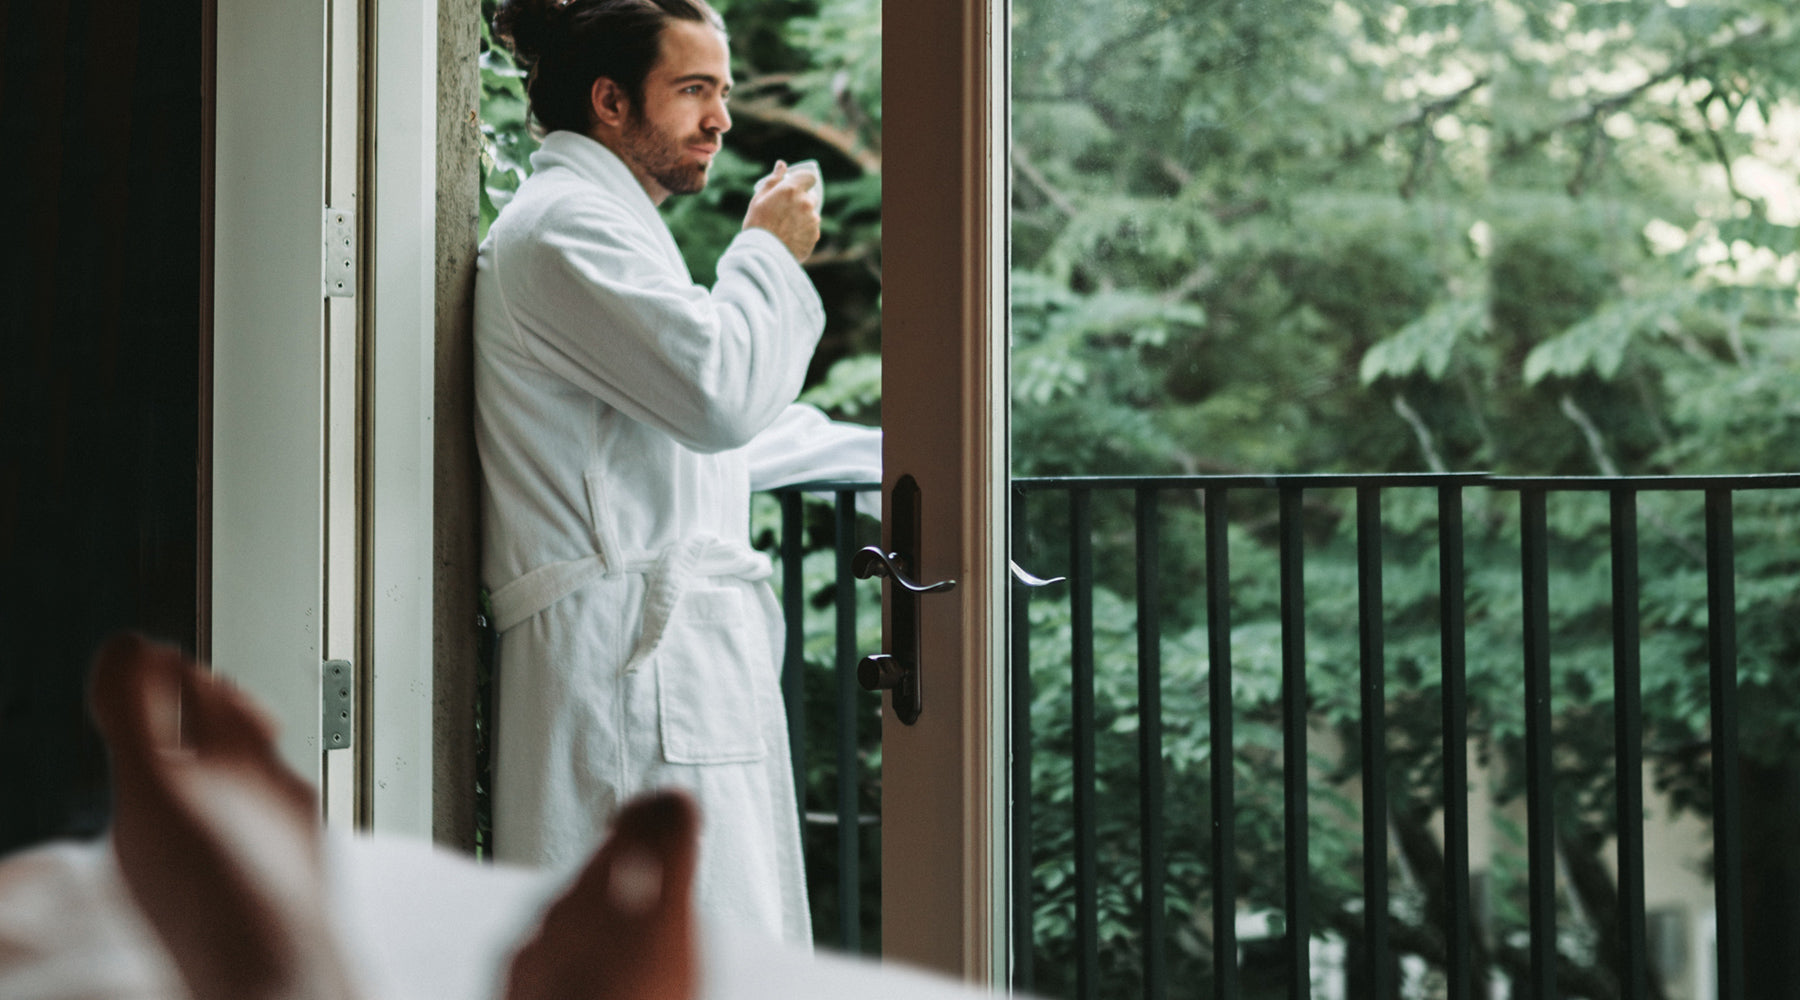 Man with hair pulled back in a white robe looking out the window and drinking coffee after a sexual encounter